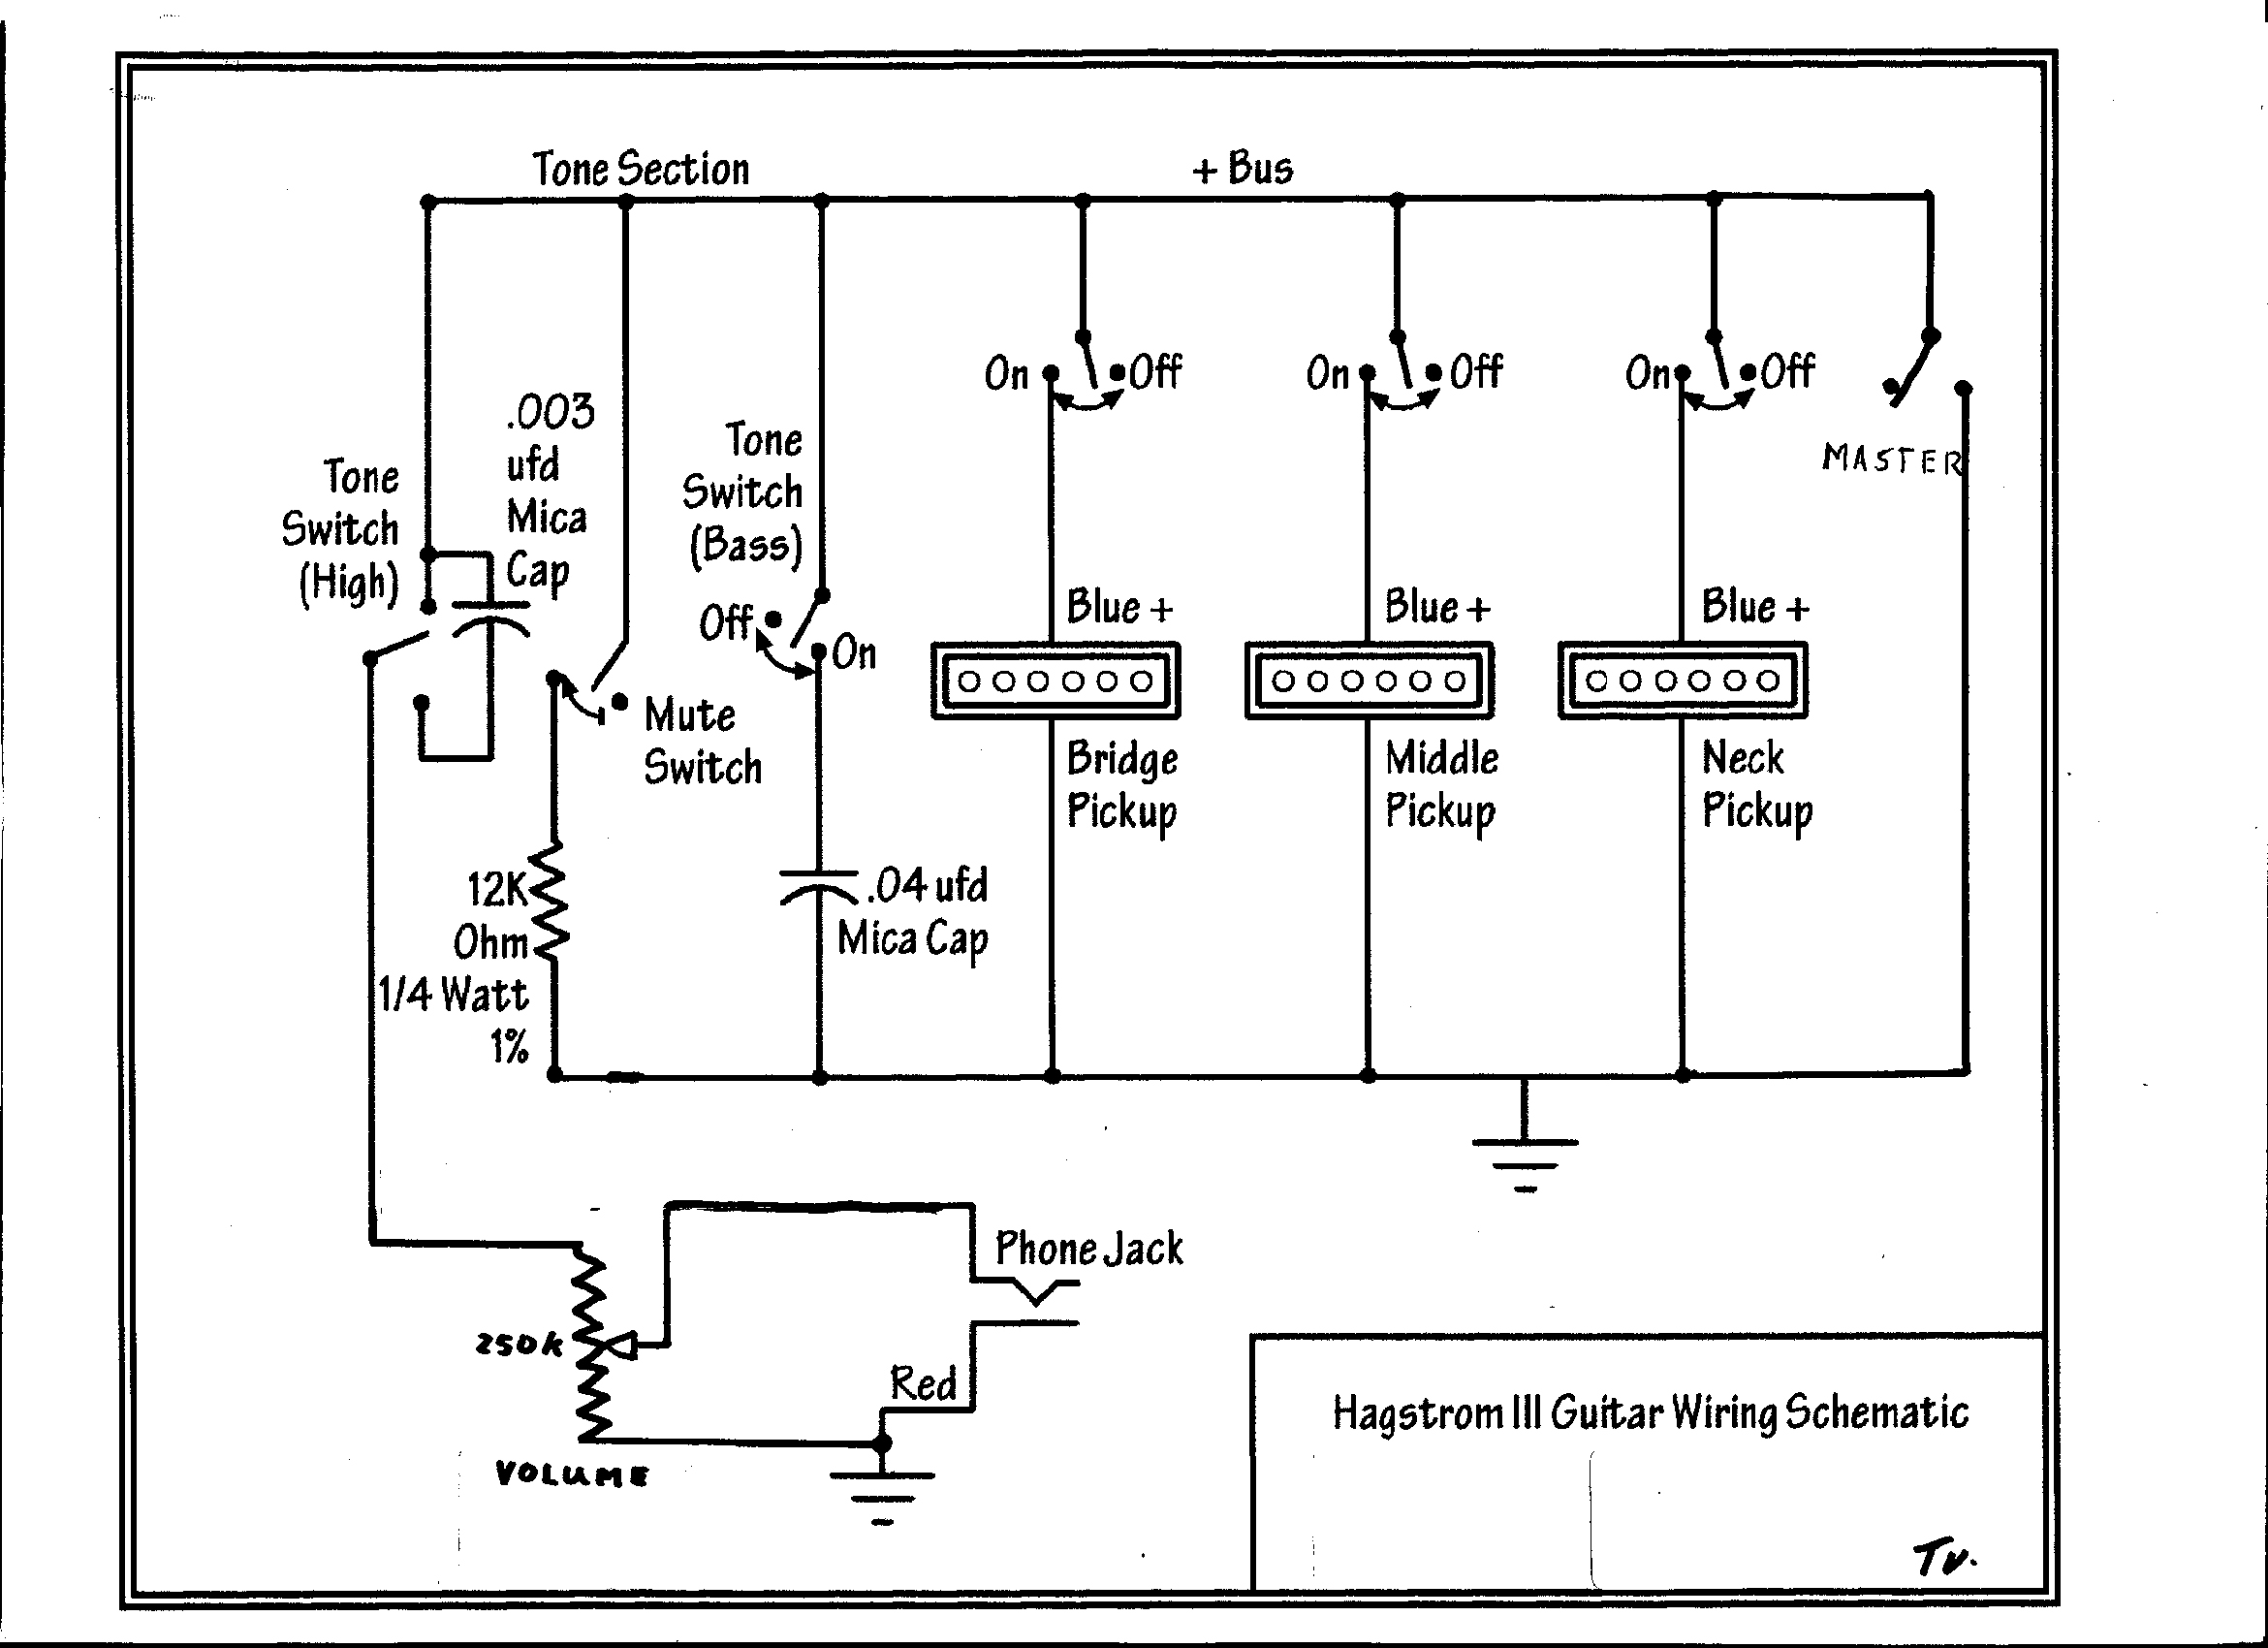 Hagstrom_III_Schematic guitar wiring drawings, switching system hagstrom hagstrom iii hagstrom swede wiring diagram at bayanpartner.co